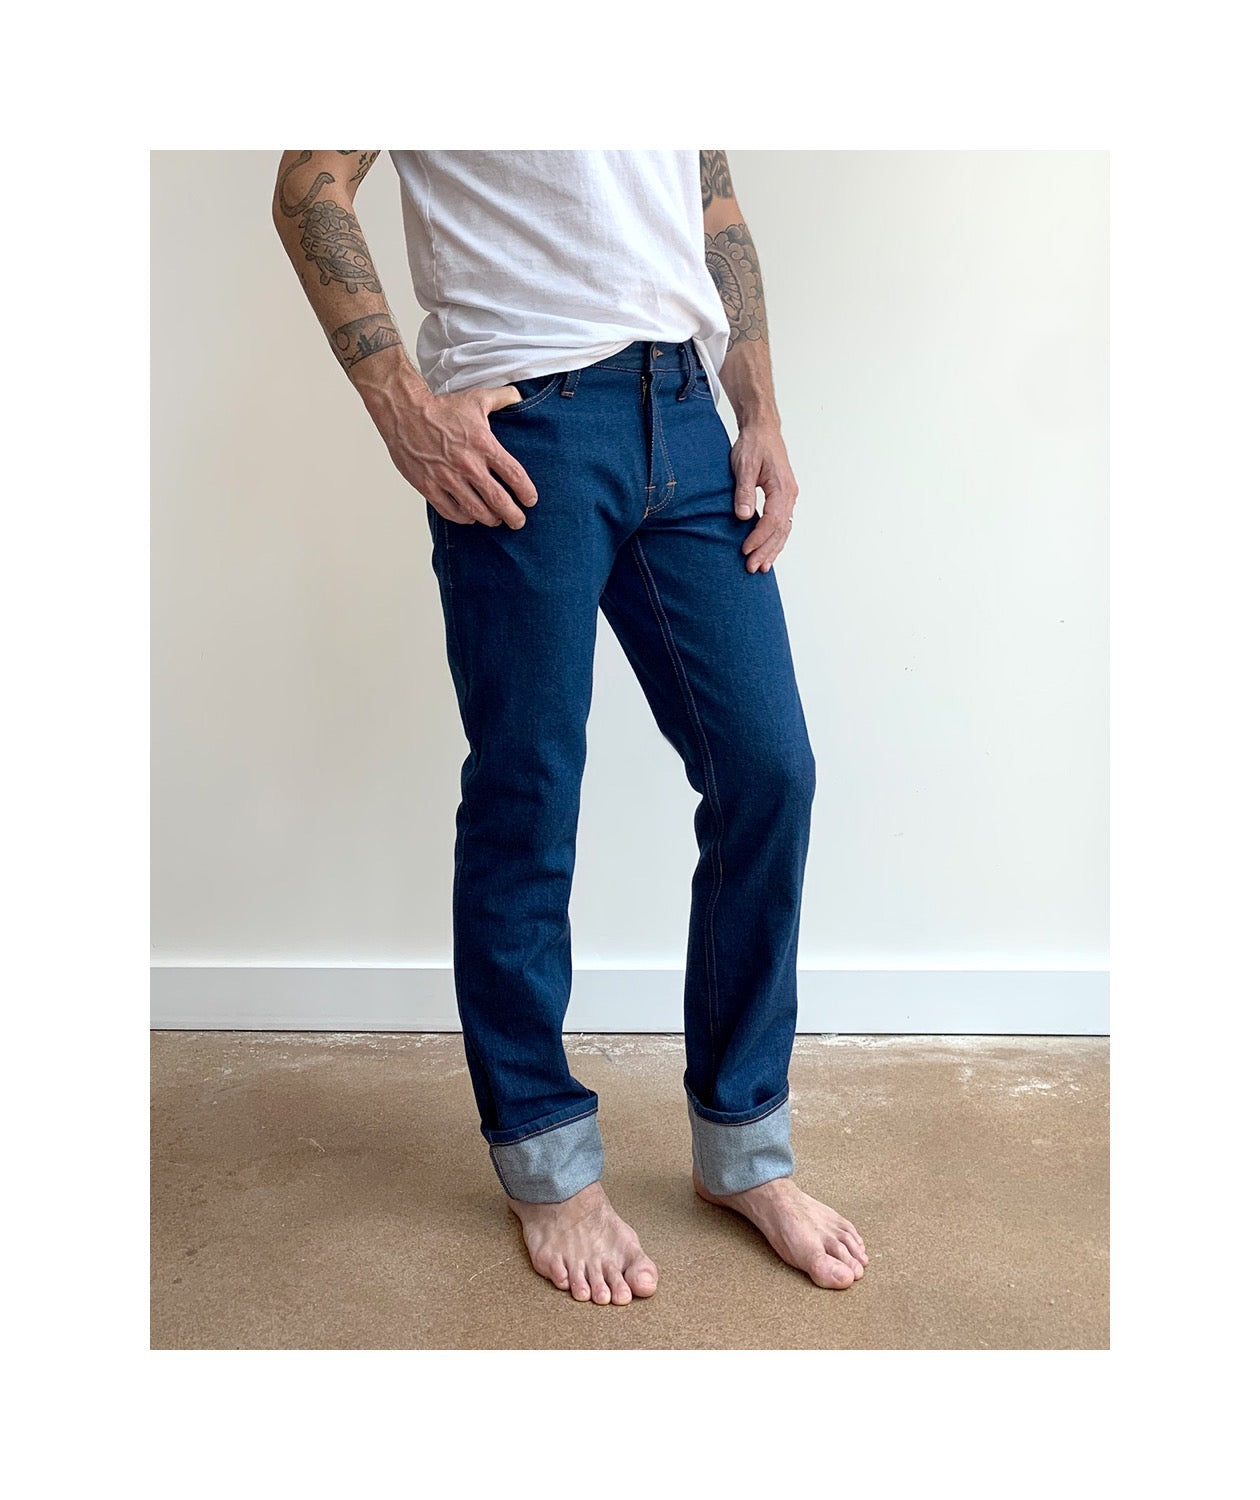 Waist down photo of model wearing mens REVEREND style jeans slightly angled to show side of jeans.